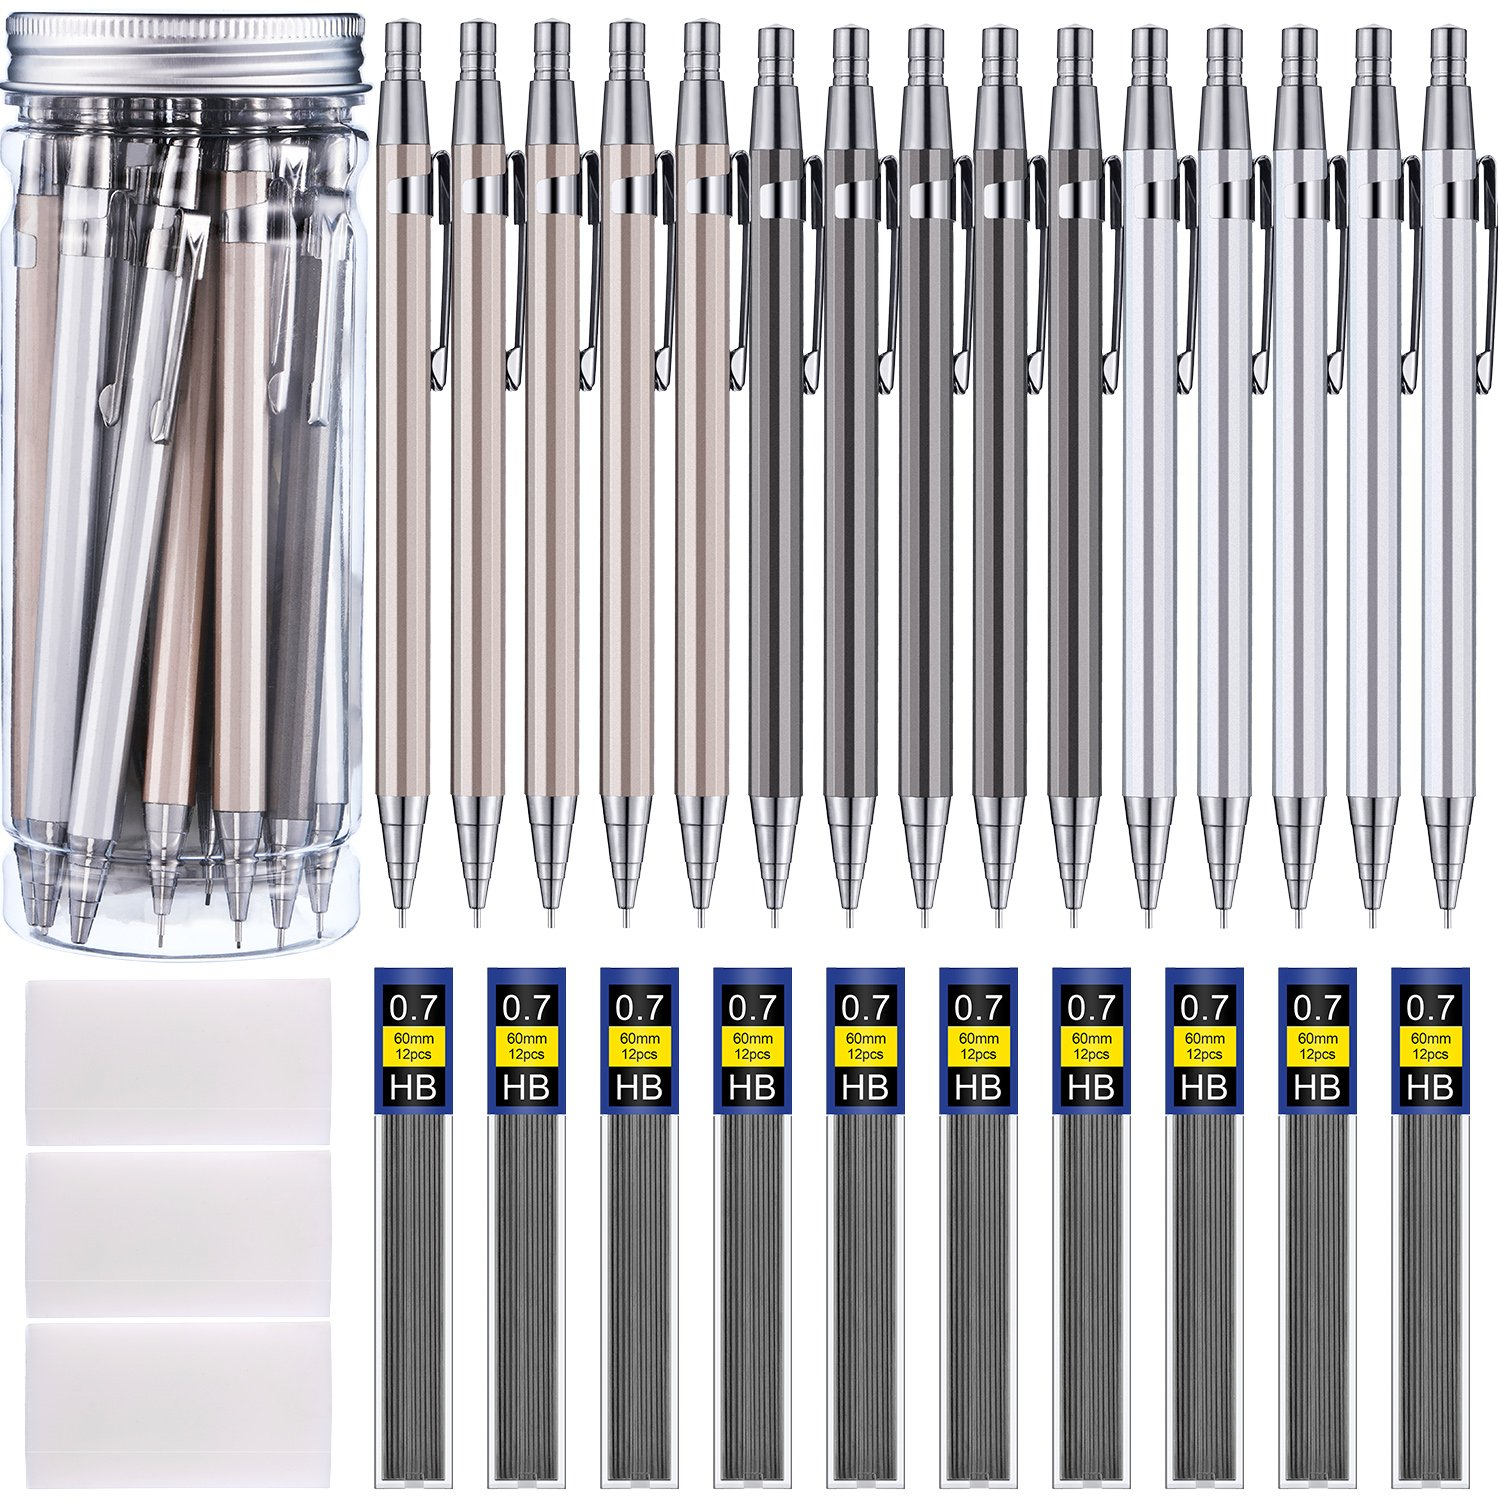 Boao 15 Pieces Metal Mechanical Pencils, 10 Tubes of Lead Refills and 3 Pieces Erasers with Clear Plastic Bottle, 0.7 mm (color set 1 0.7 mm) by Boao (Image #1)